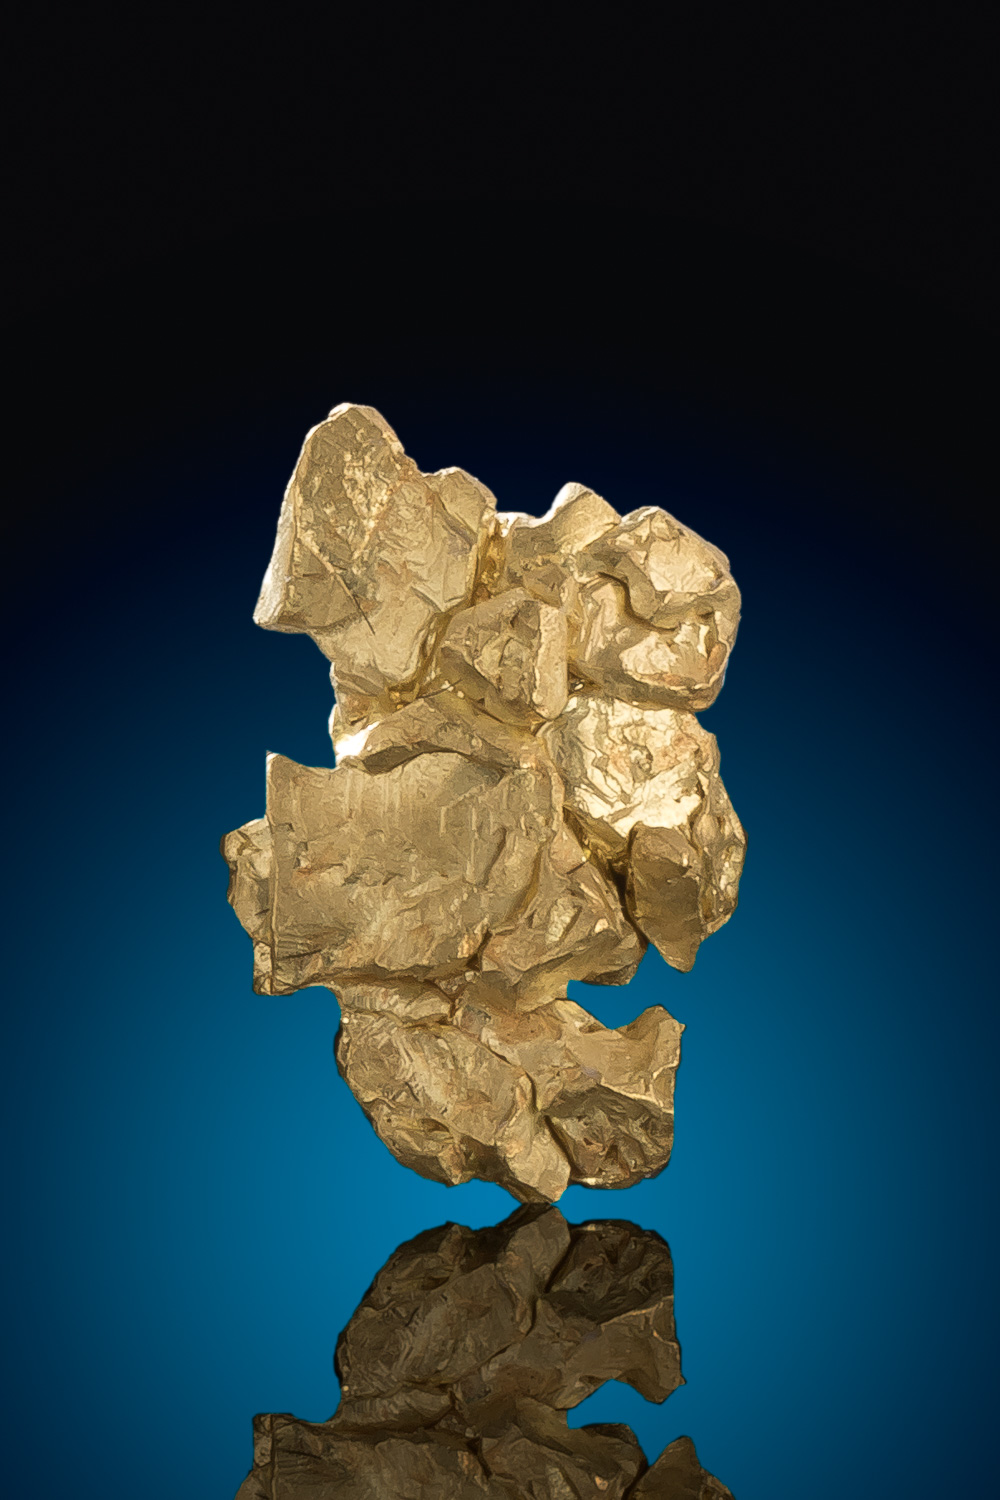 Mt. Kare - Papua New Guinea - Beautiful Gold Specimen